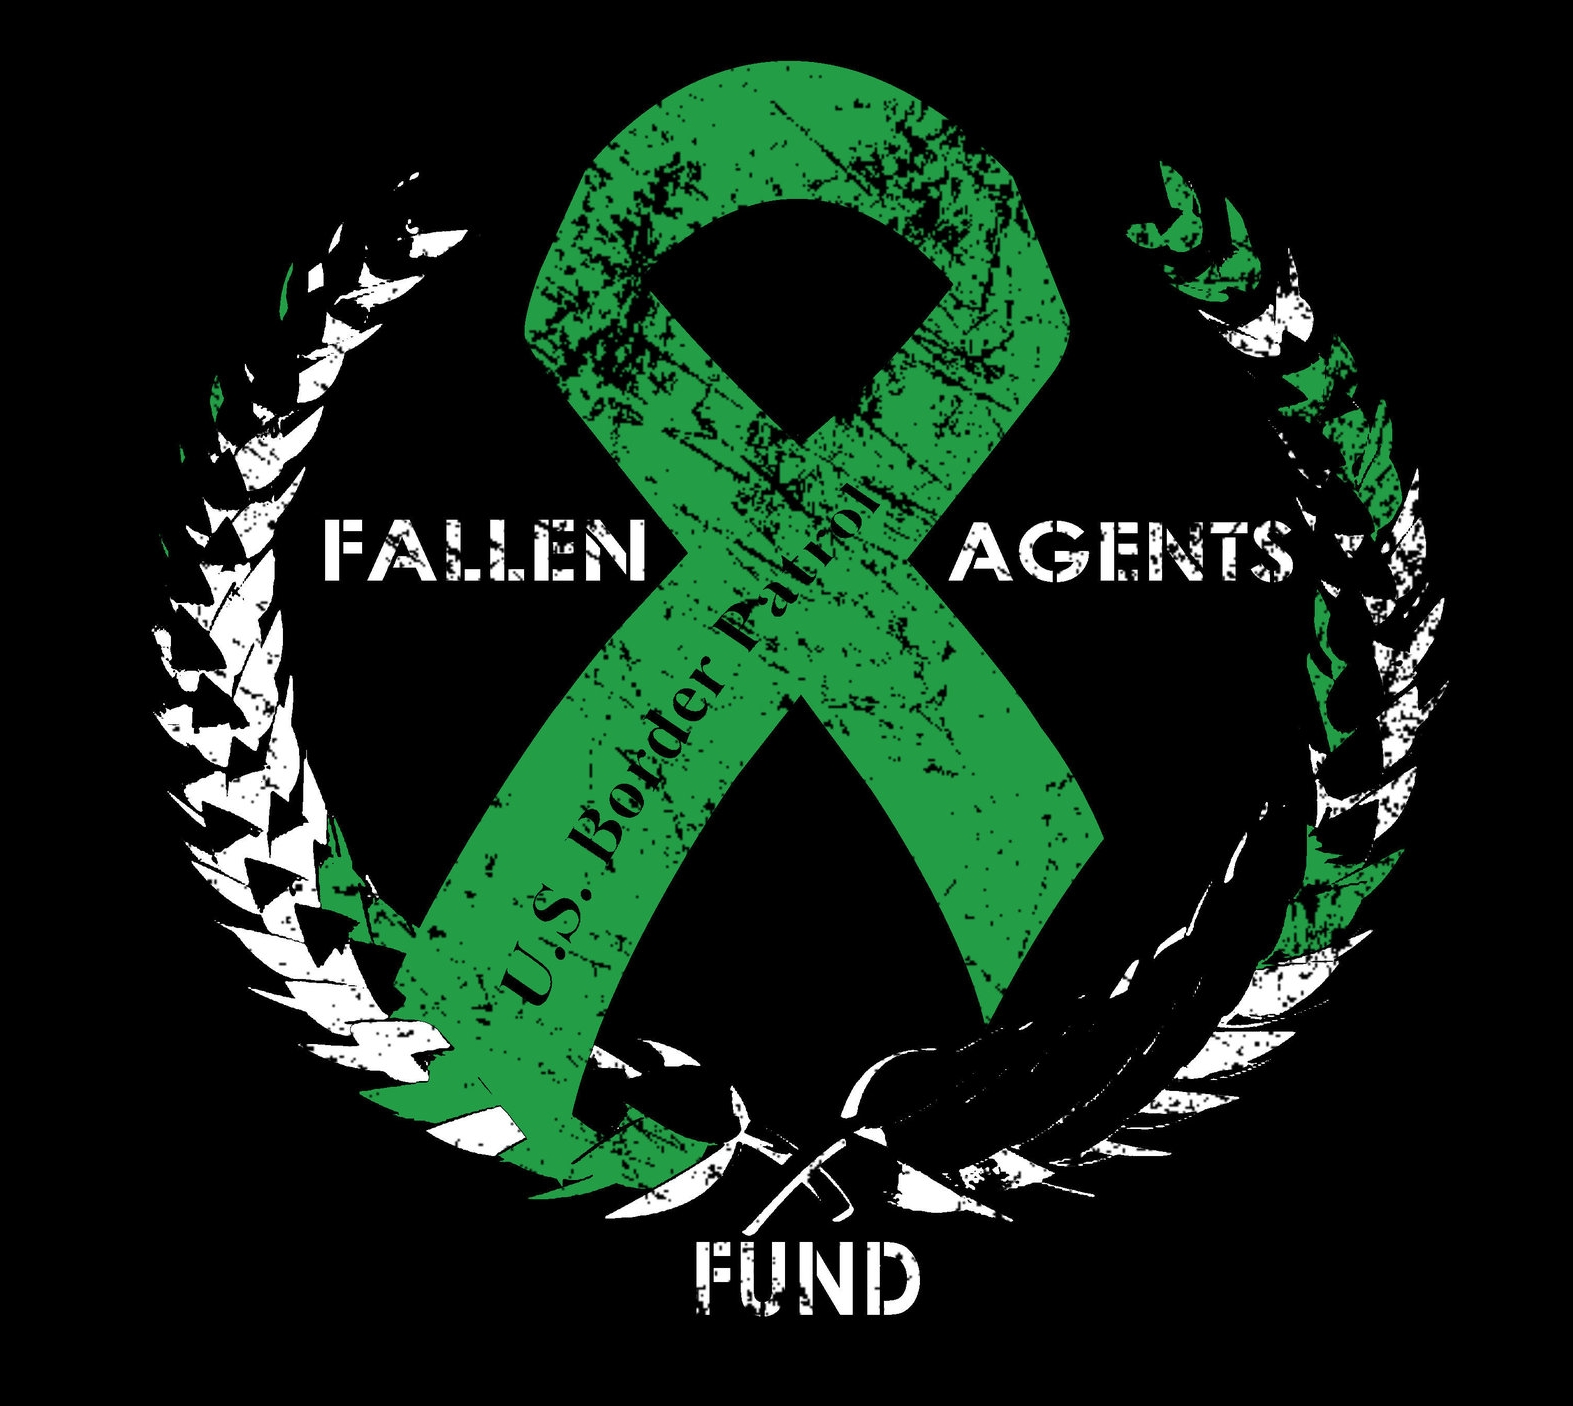 Fallen Agents Fund - We work closely with Fallen Agents Fund to make sure that the families of our fallen are taken care of.